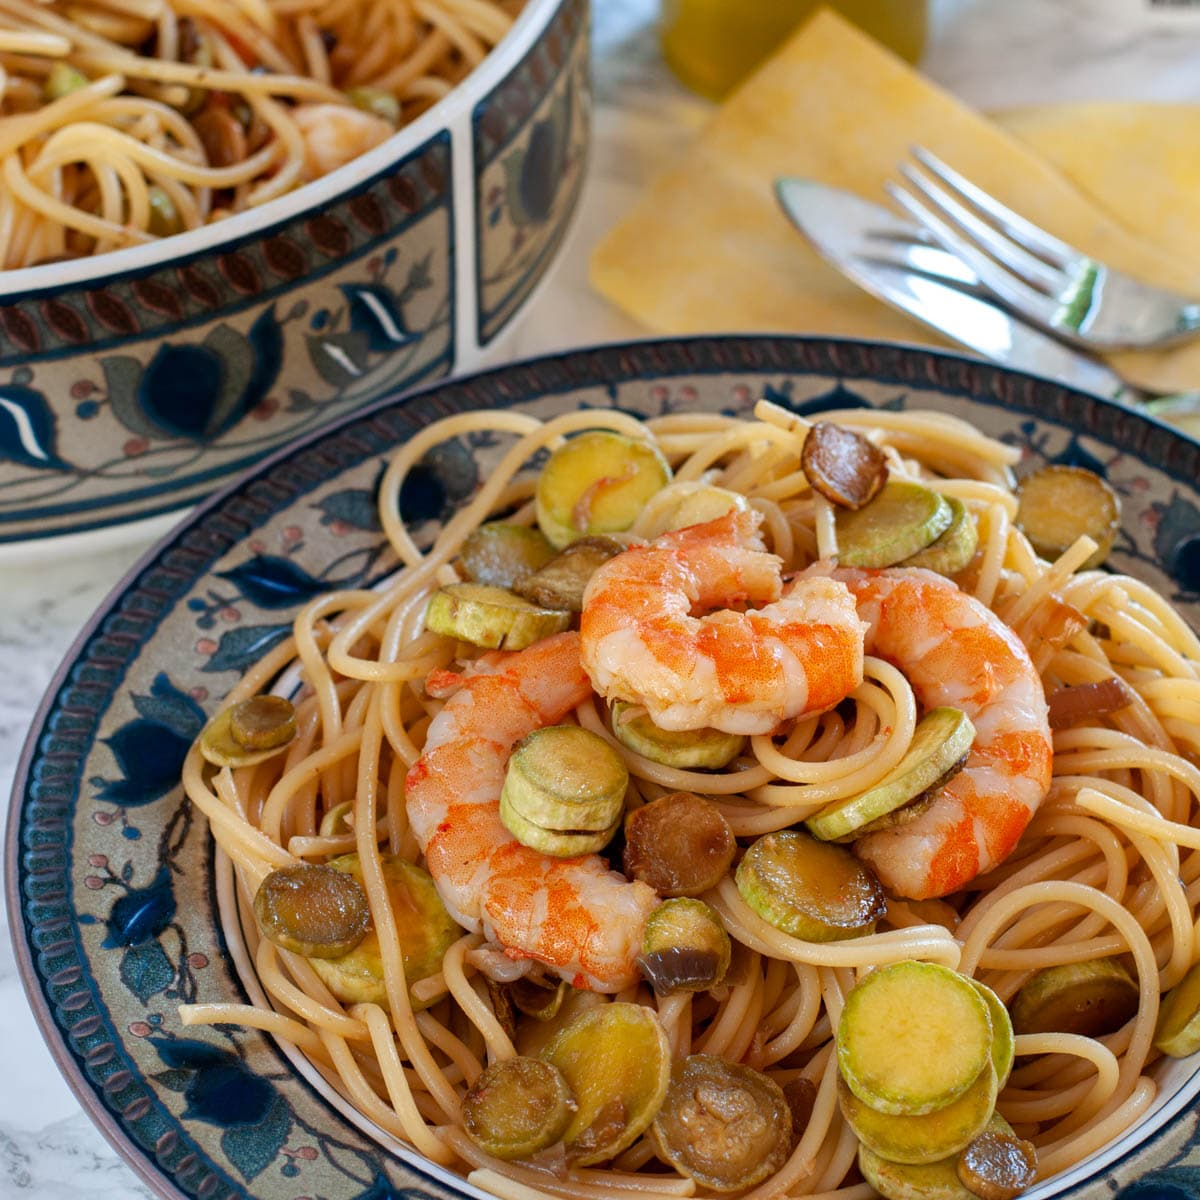 Pasta zucchini with shrimp served on a plate